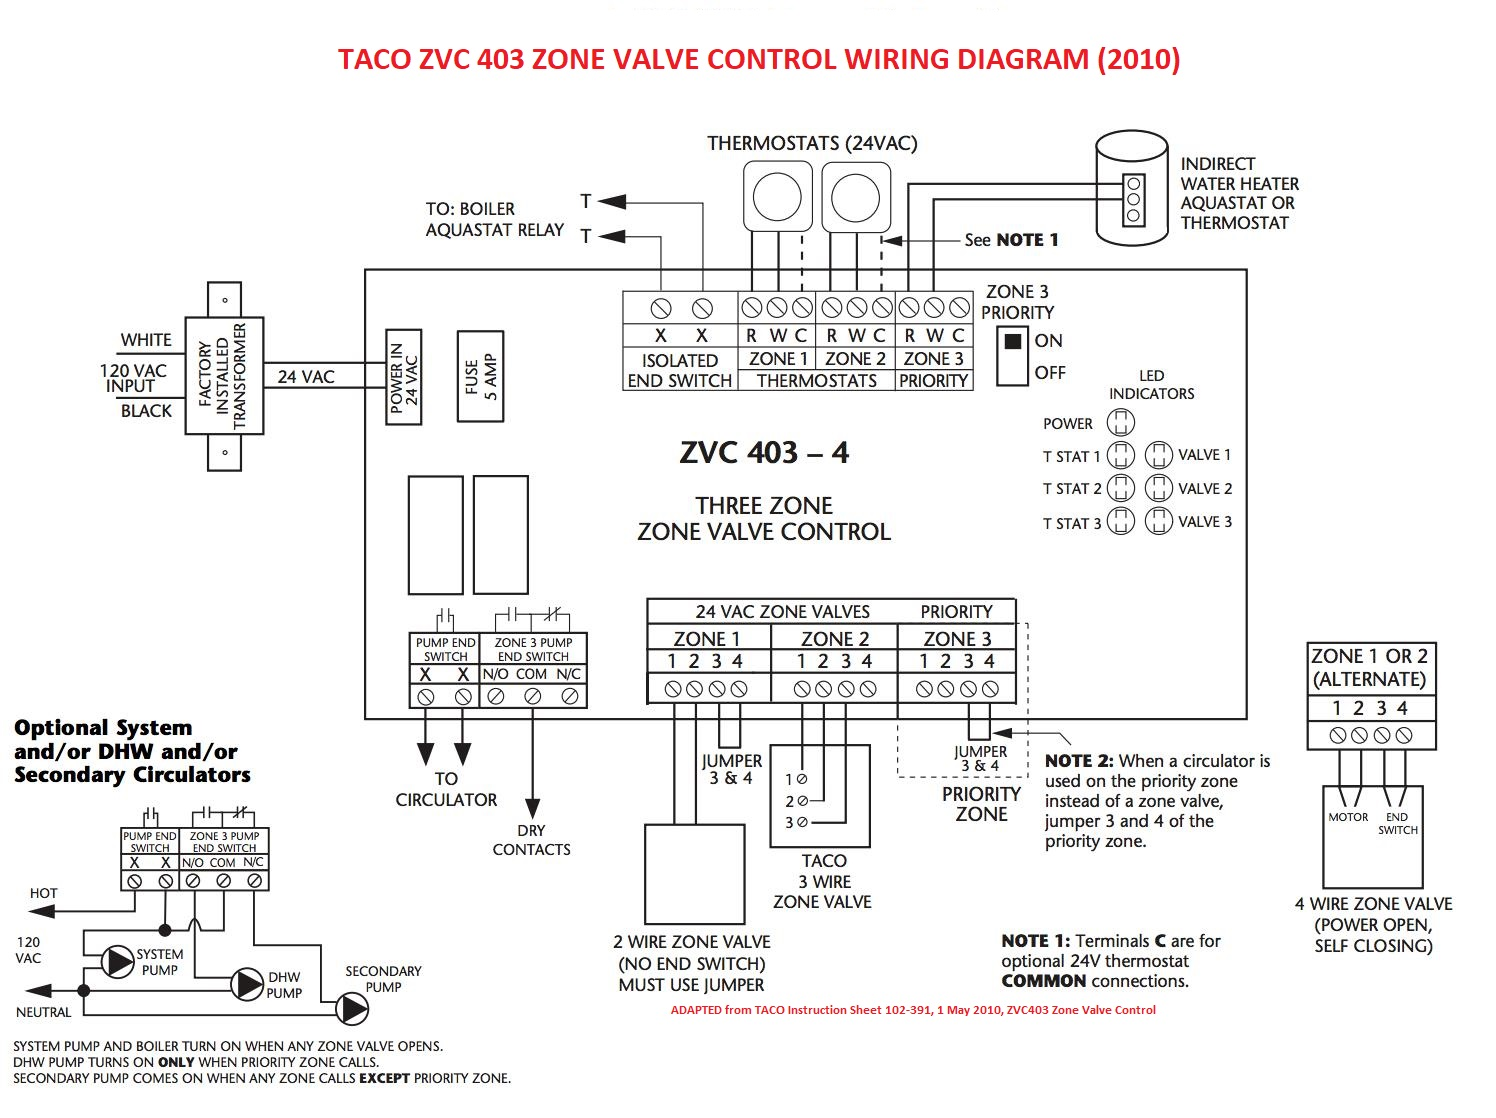 10 4 Electrical Wire Free Wiring Diagrams For Expert Category Pontiac Montana Starter Diagram Get Image About Zone Valve Installation Instructions Guide To Heating Rh Inspectapedia Com